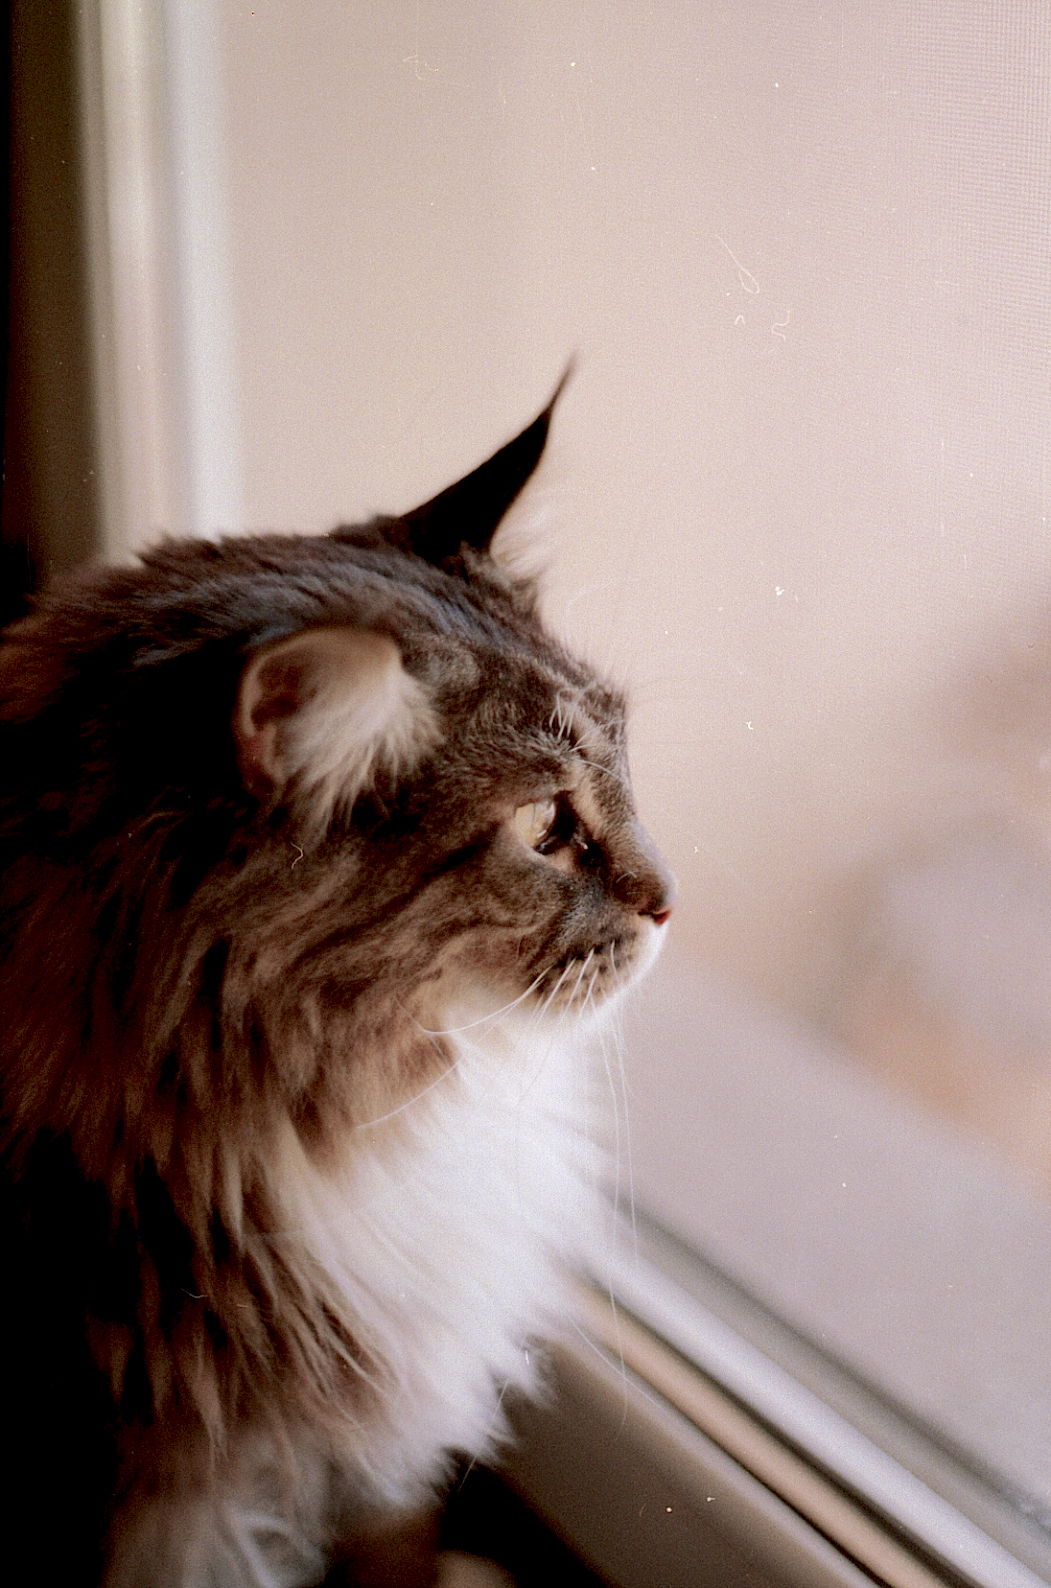 Cat Cute Wallpaper Download Brown And Gray Haired Cat Looking Out The Glass Window